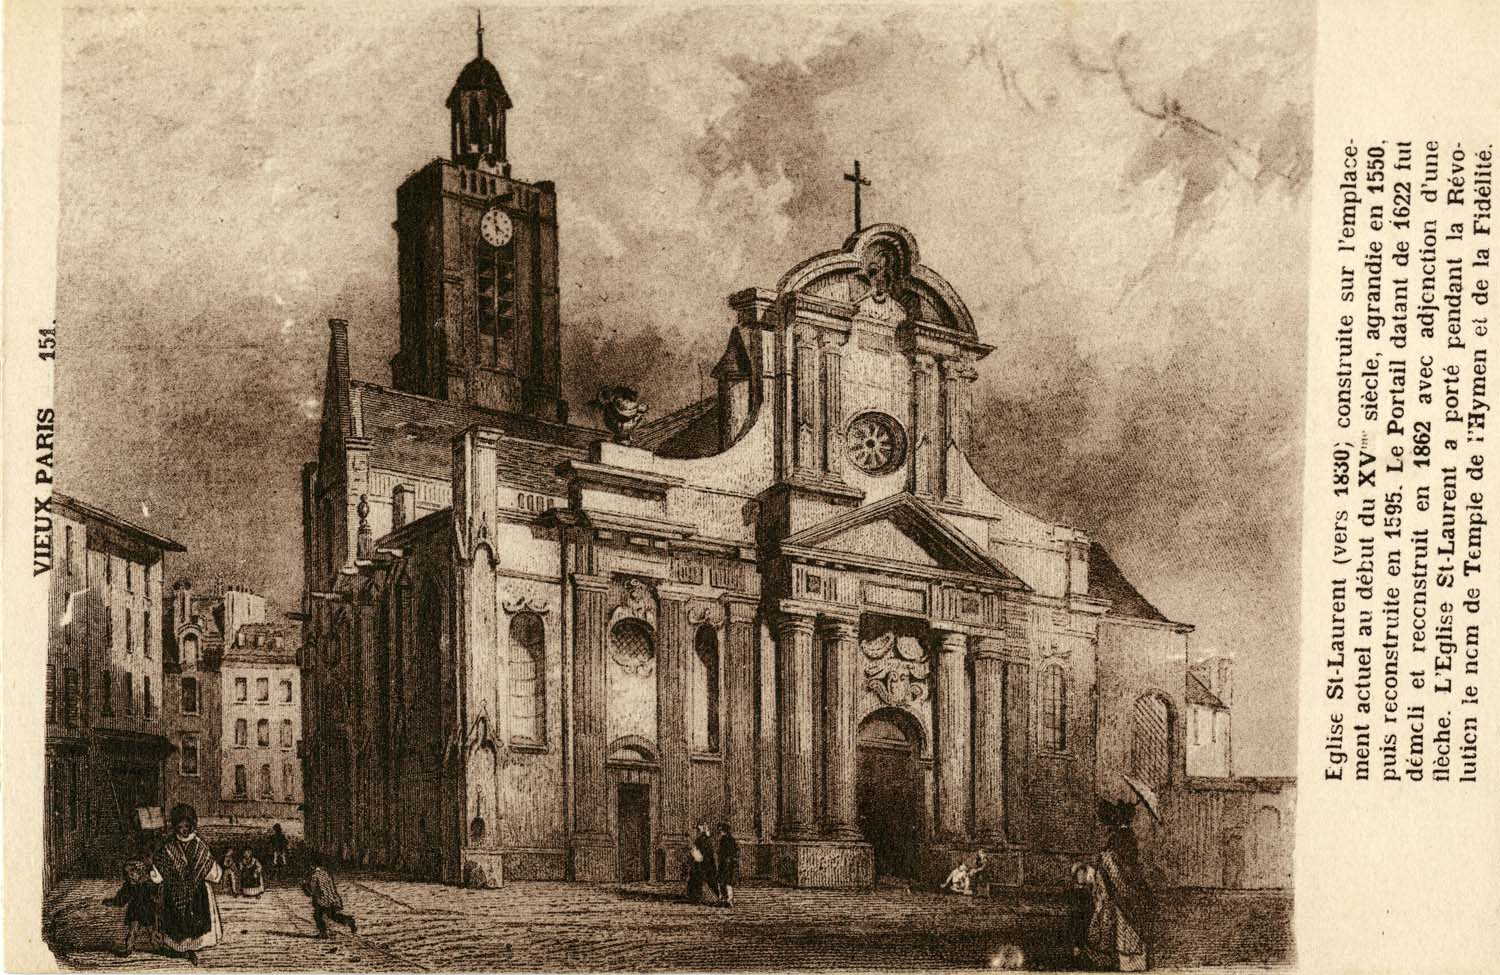 Sepia tone postcard featuring artistic rendering of the early façade with brief history of the church printed at right edge.